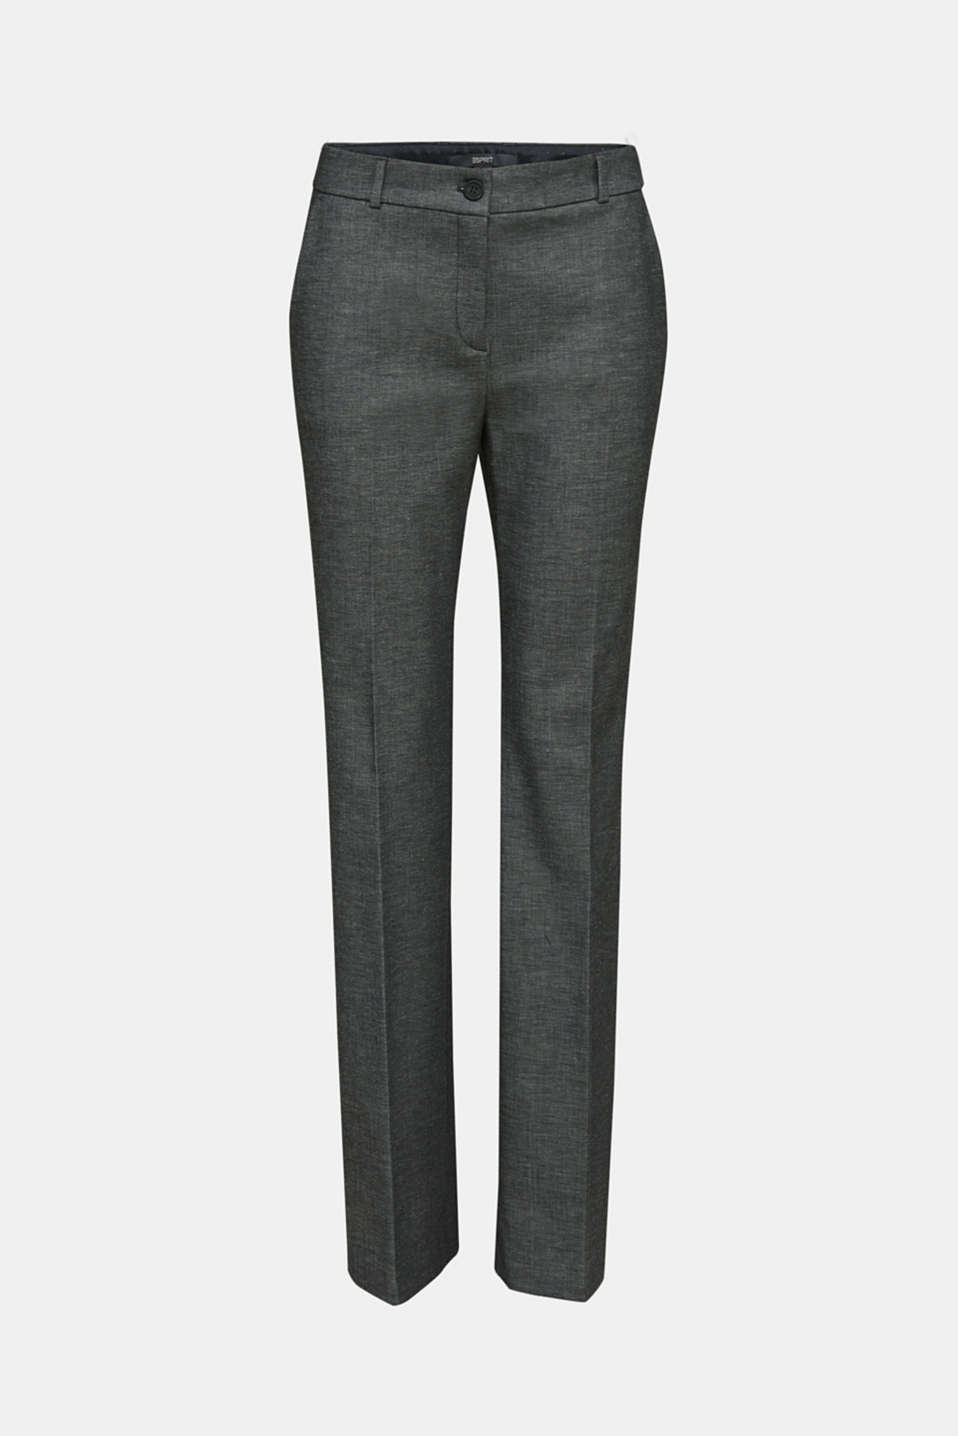 SHINY TEXTURE mix + match stretch trousers, DARK GREY 5, detail image number 7